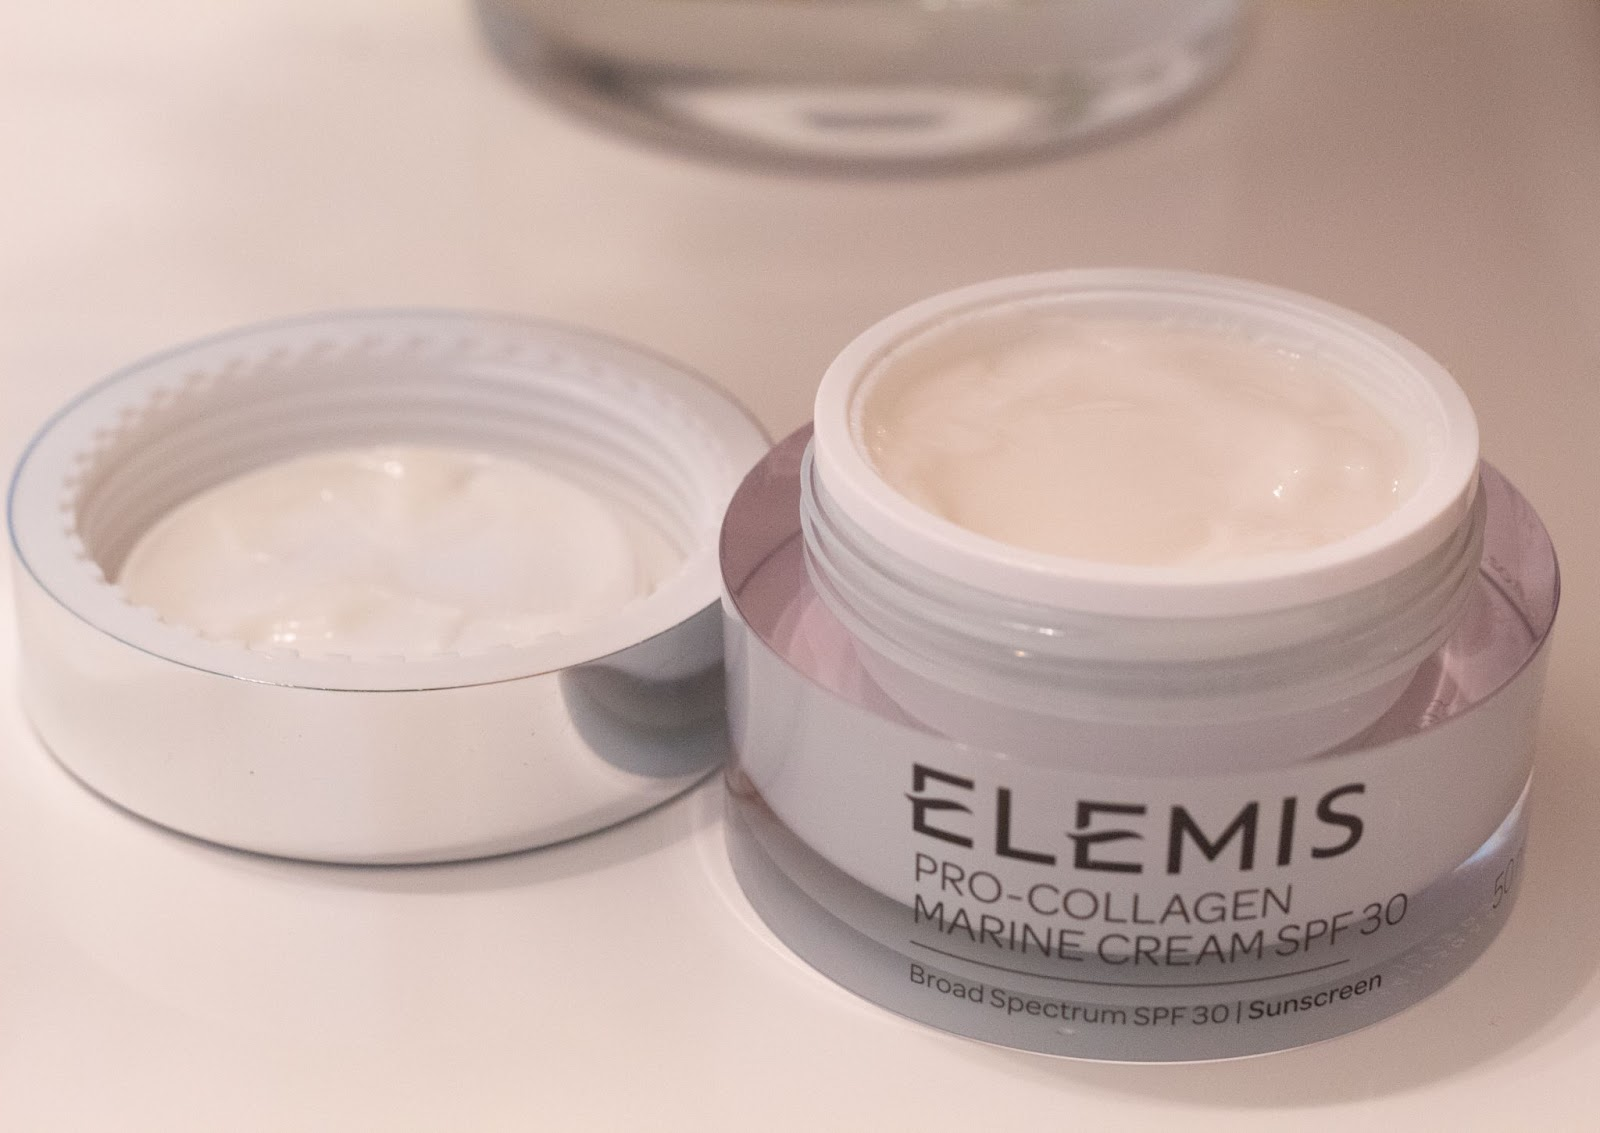 ELEMIS Skin Care Product Review - Pro-Collagen Marine Cream SPF30 - Patience & Pearls